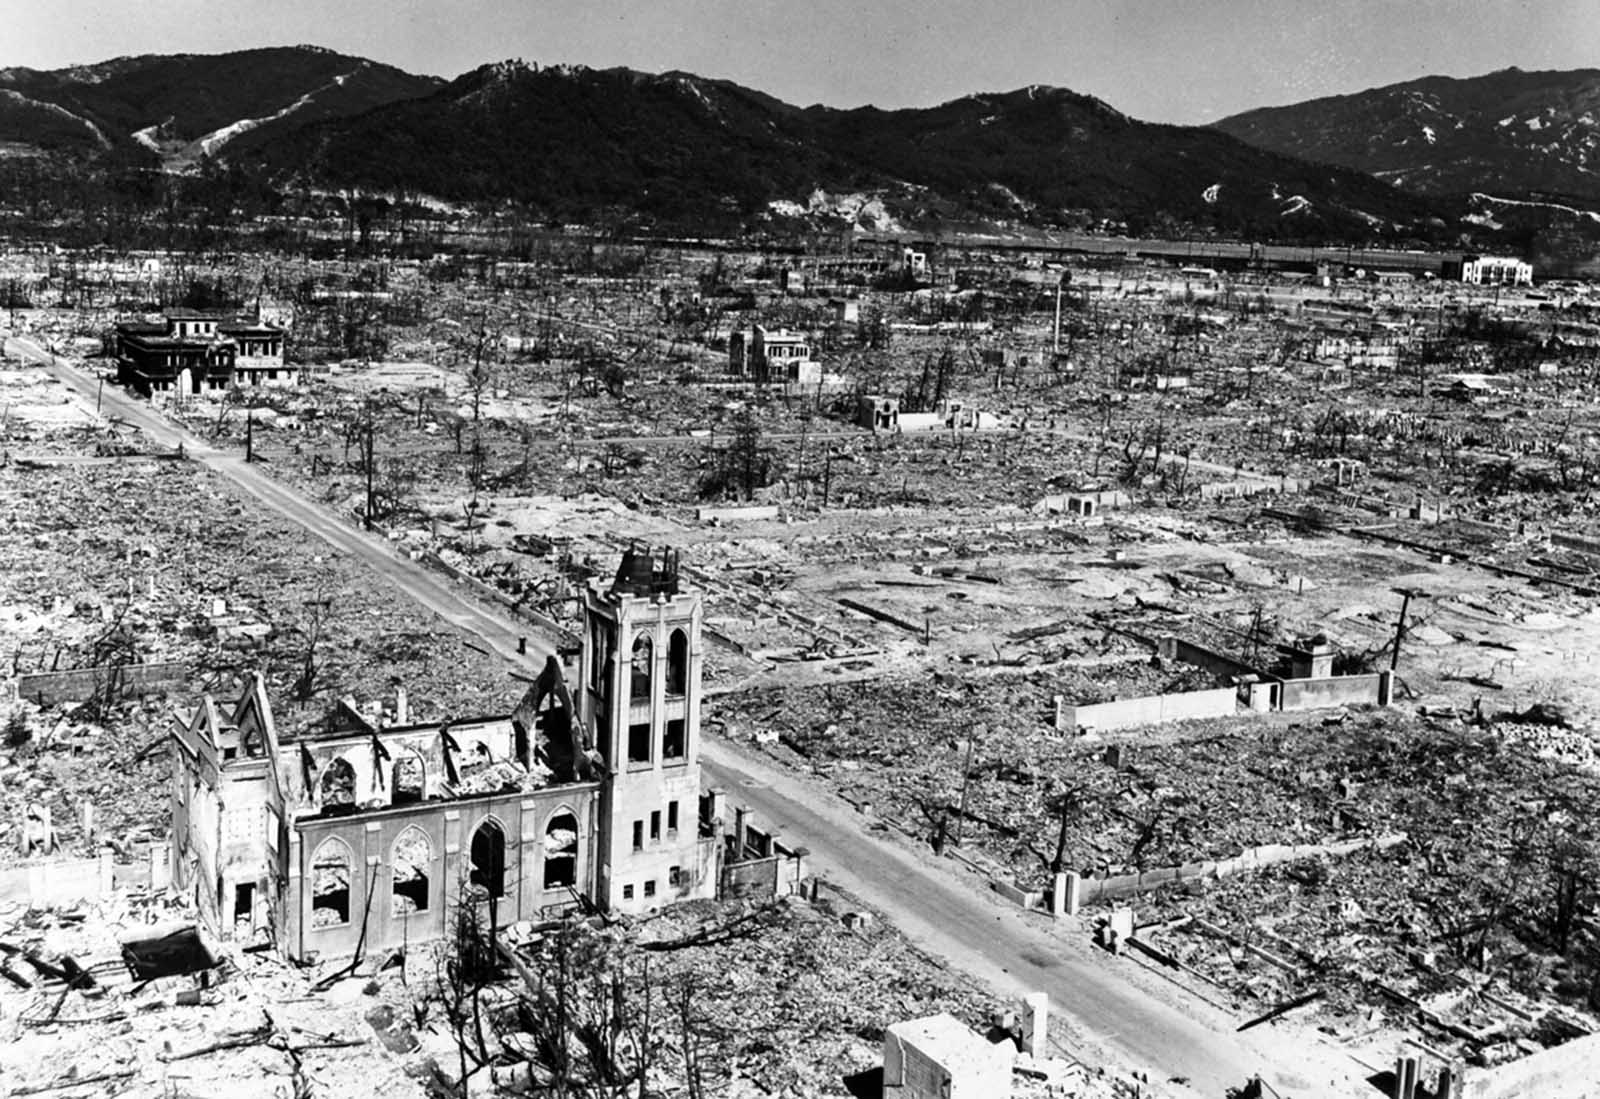 Hiroshima after atomic bomb 1945